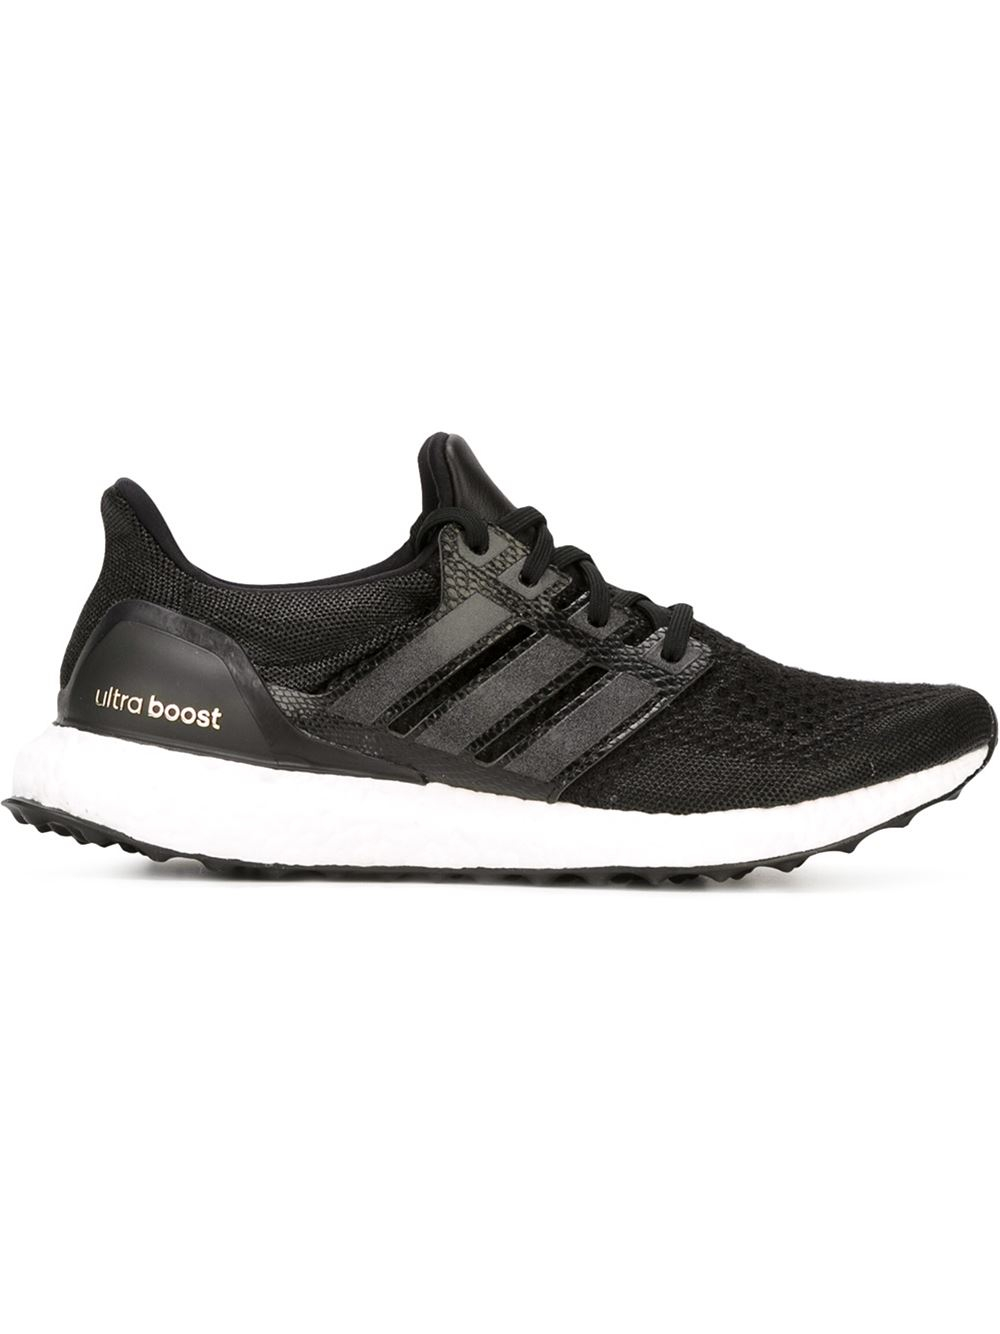 adidas 39 ultra boost 39 sneakers in black for men lyst. Black Bedroom Furniture Sets. Home Design Ideas